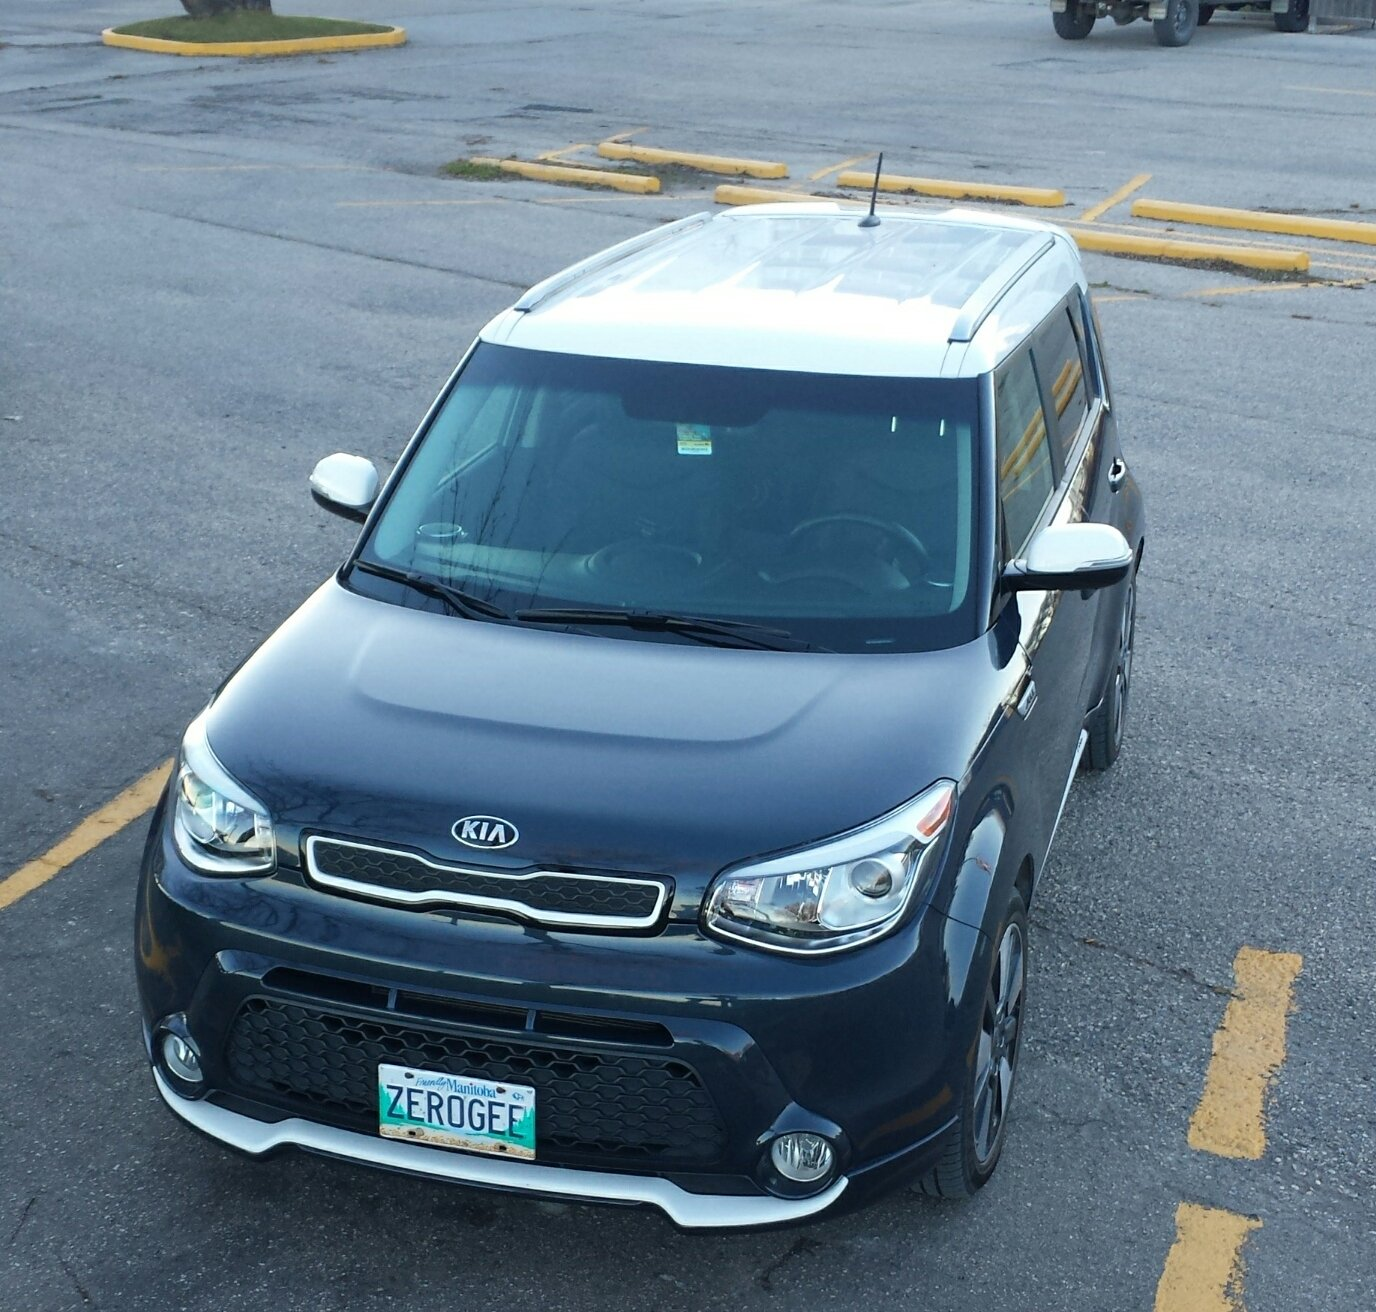 kia soul sport special edition model owner interview kia news blog. Black Bedroom Furniture Sets. Home Design Ideas